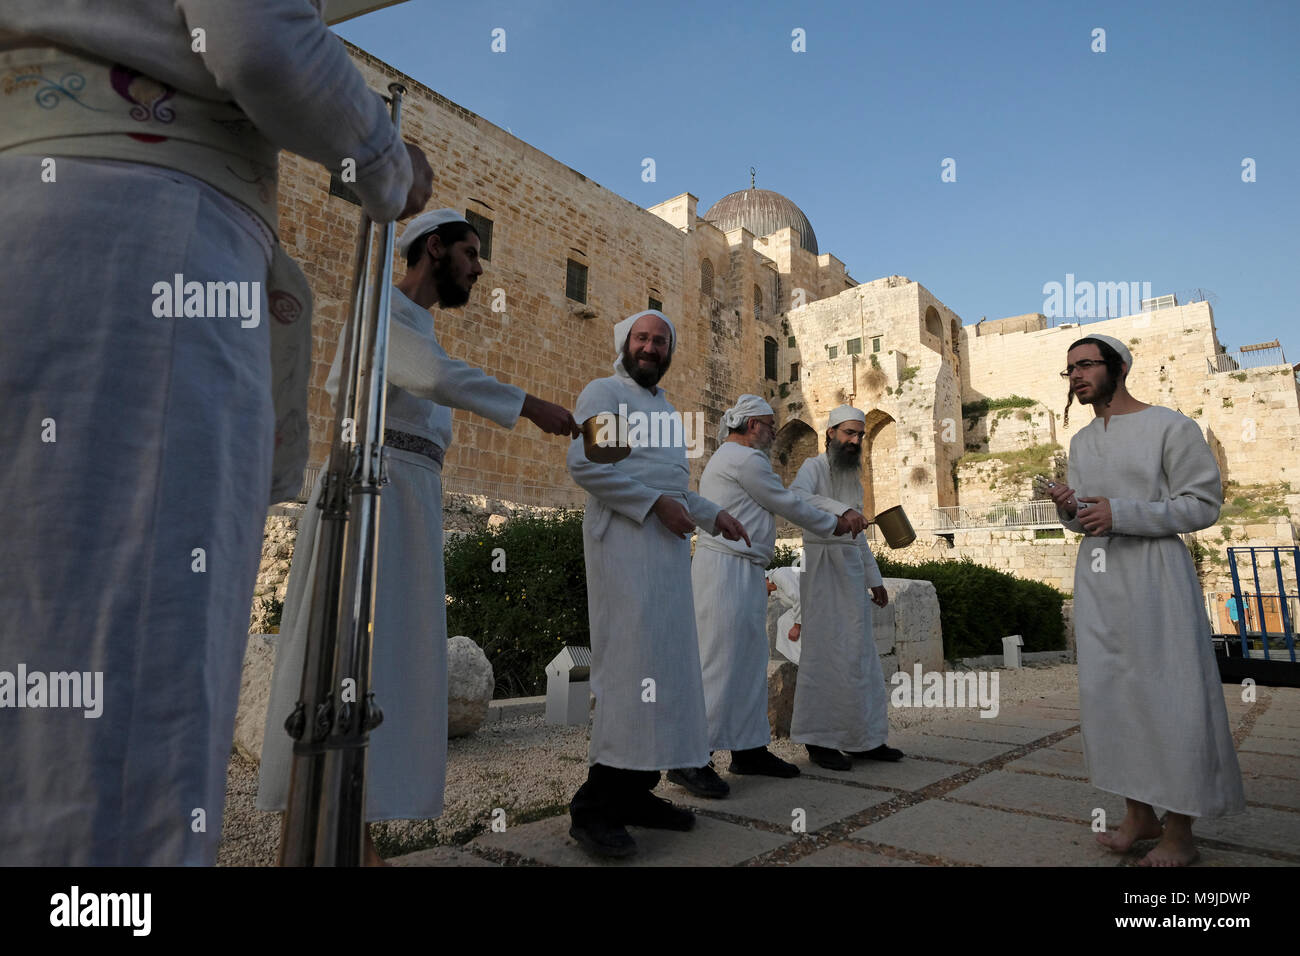 Jerusalem, Israel, 26th March, 2018  Religious Jews of the priestly